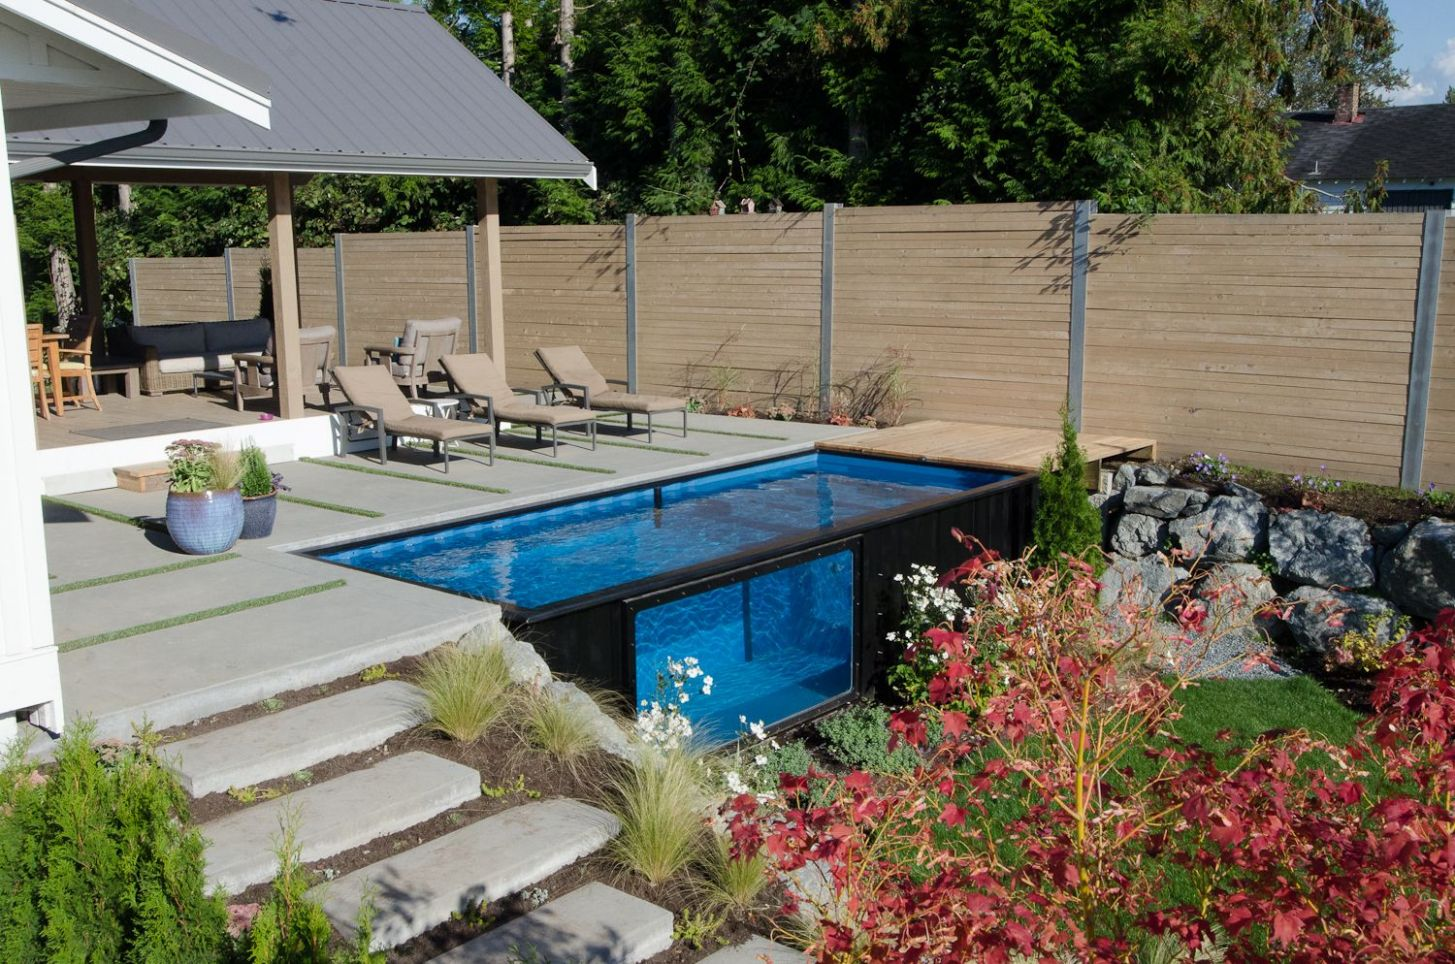 8 In-Ground Pool Designs - Best Swimming Pool Design Ideas for ...